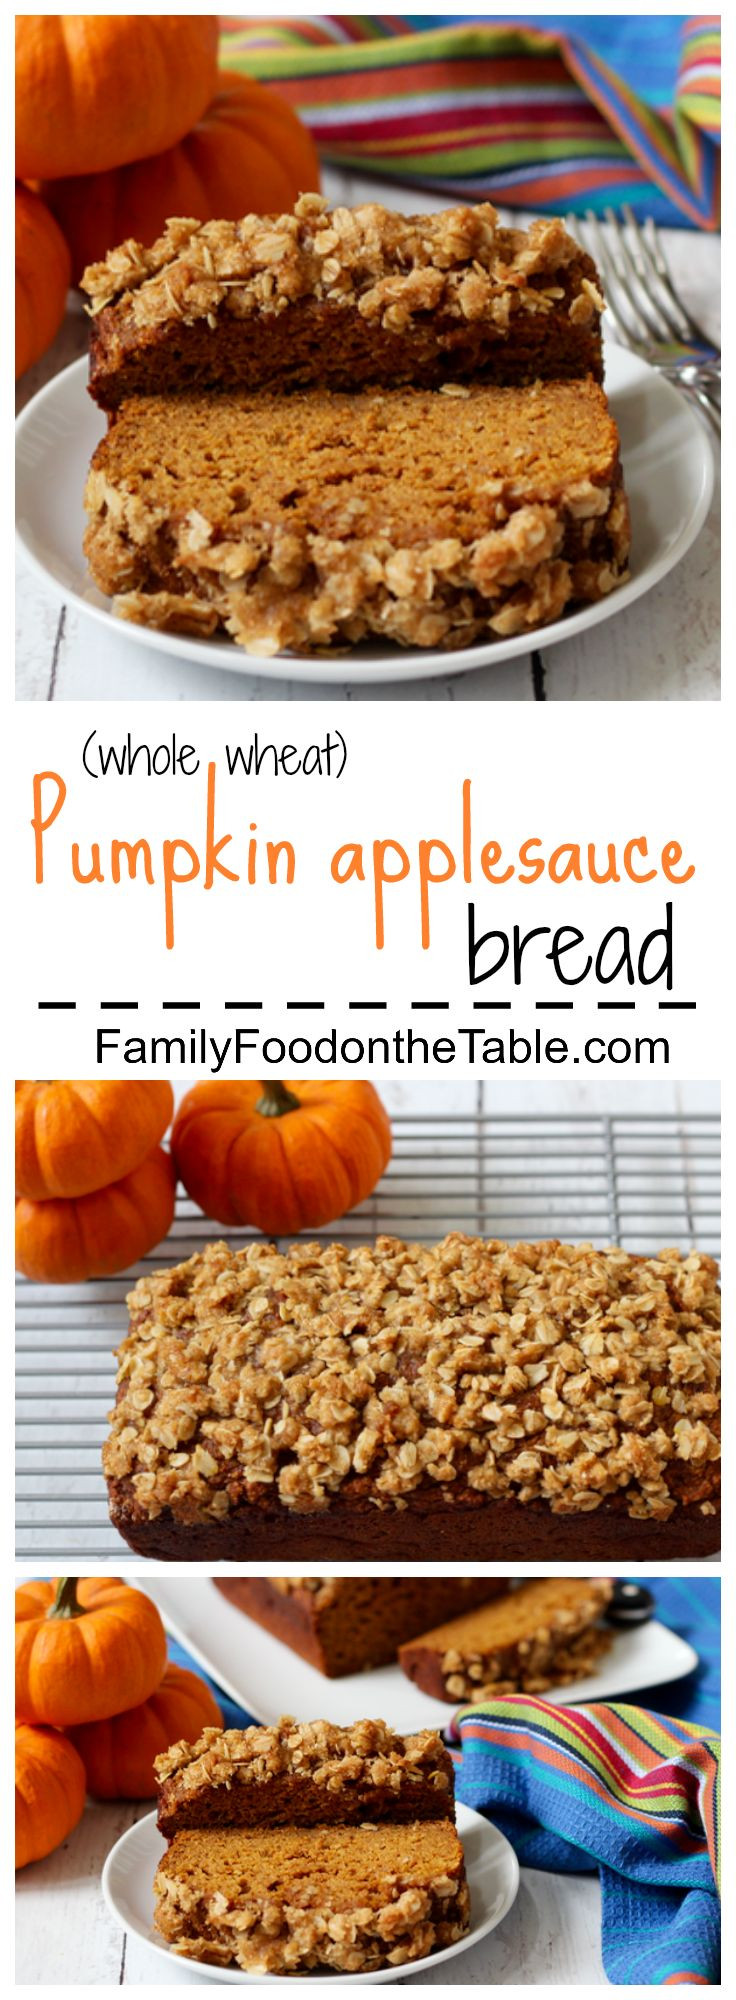 Healthy Pumpkin Cookies Applesauce  Best 25 Healthy pumpkin recipes ideas on Pinterest